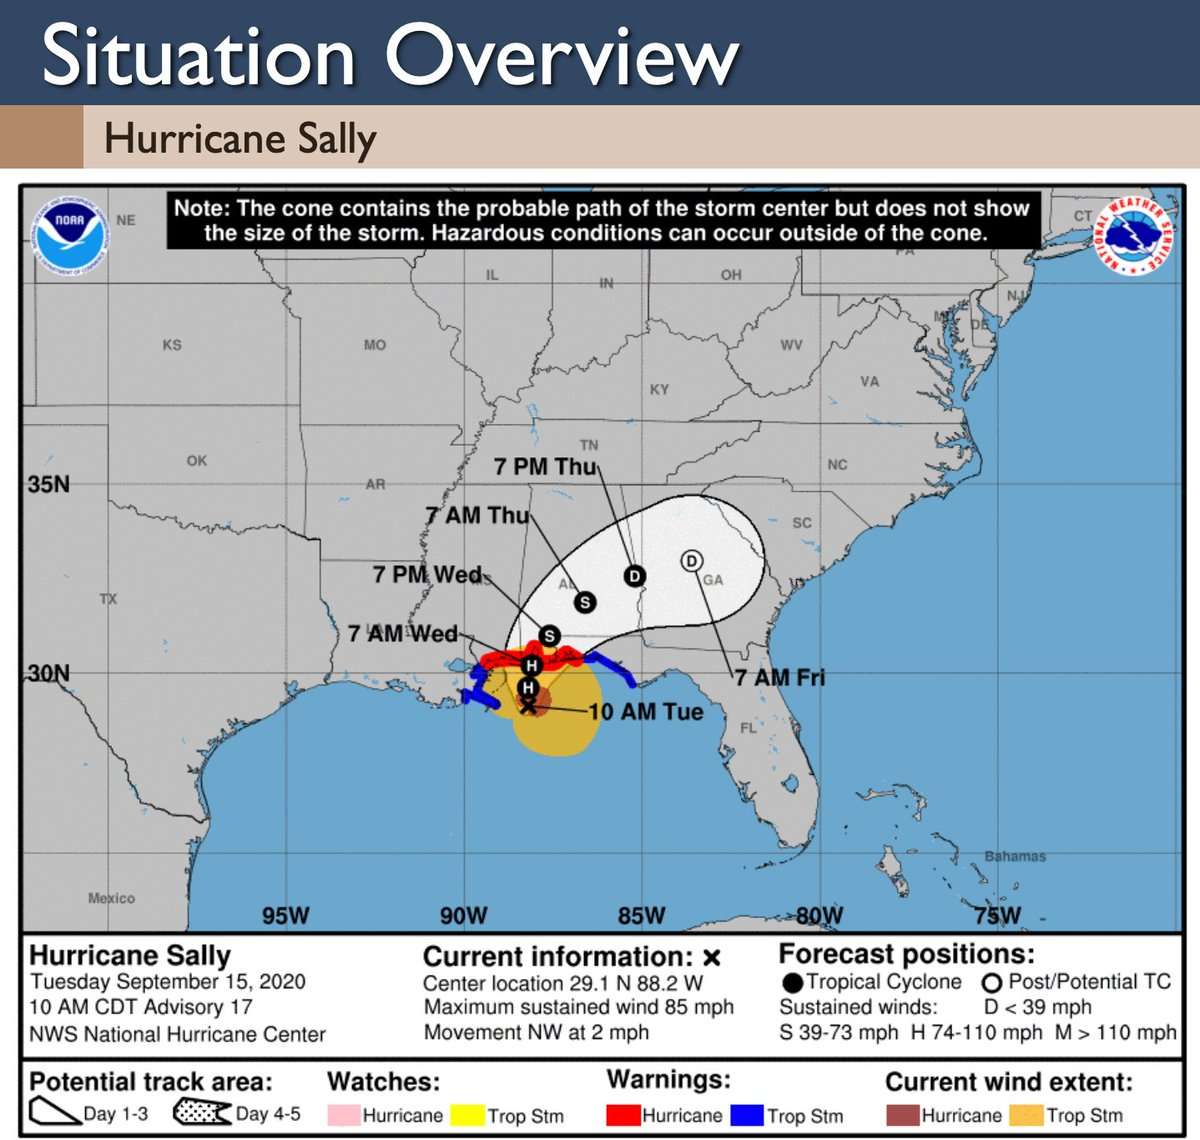 #HurricaneSally 10am Update: 🌀Sally has become slightly weaker 🌀All SELA is no longer in a Hurricane Warning, but in a Tropical Storm Warning 🌀All of SELA is no longer in a Flash Flood Watch 🌀Landfall is still expected near the AL/MS state line